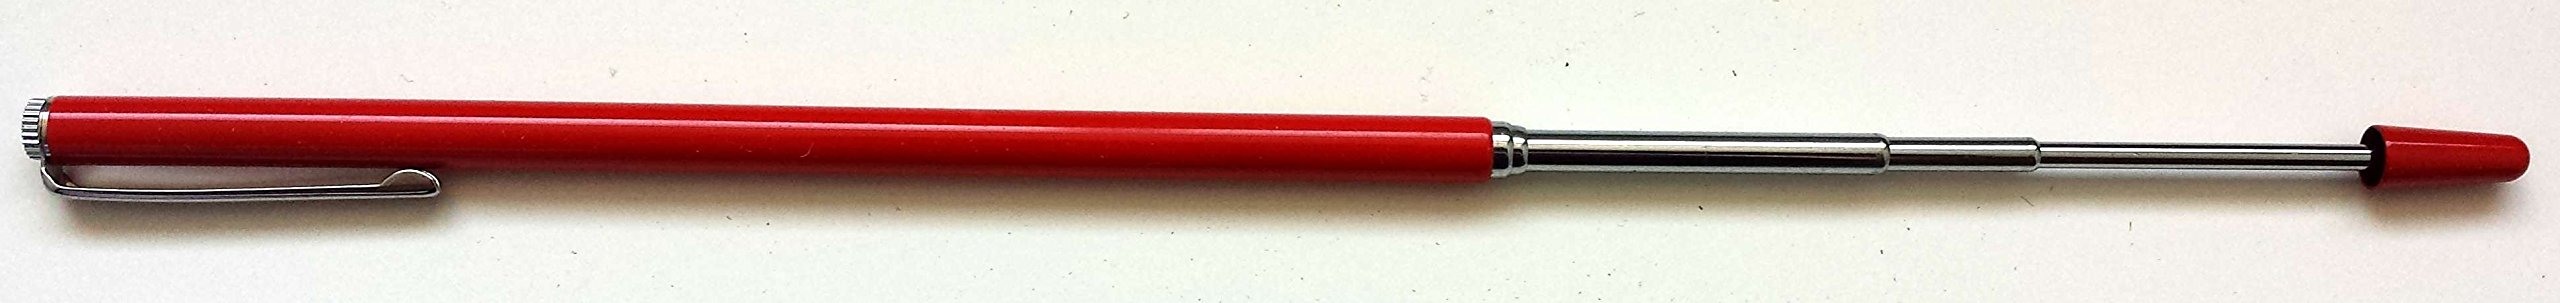 Metal Retractable/Telescoping Red Pointer, extends to approx. 35'', AA-778NO w/pocket clip for Educators/Therapists. by AppleABC Teachers Gifts (Image #1)